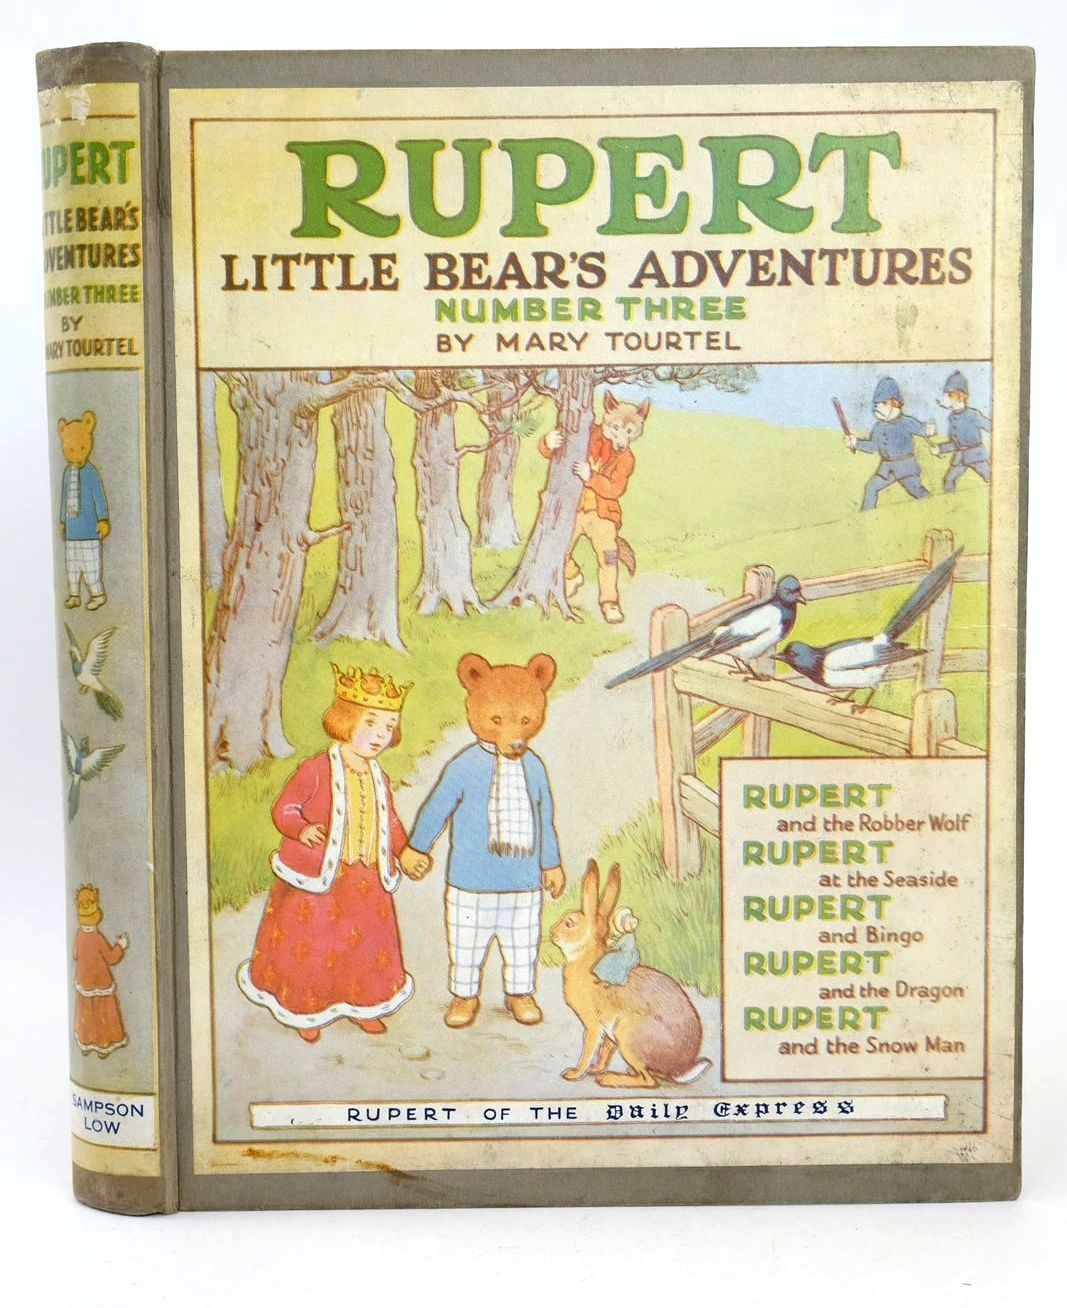 Photo of RUPERT LITTLE BEAR'S ADVENTURES NUMBER THREE written by Tourtel, Mary illustrated by Tourtel, Mary published by Sampson Low, Marston & Co. Ltd. (STOCK CODE: 1318679)  for sale by Stella & Rose's Books